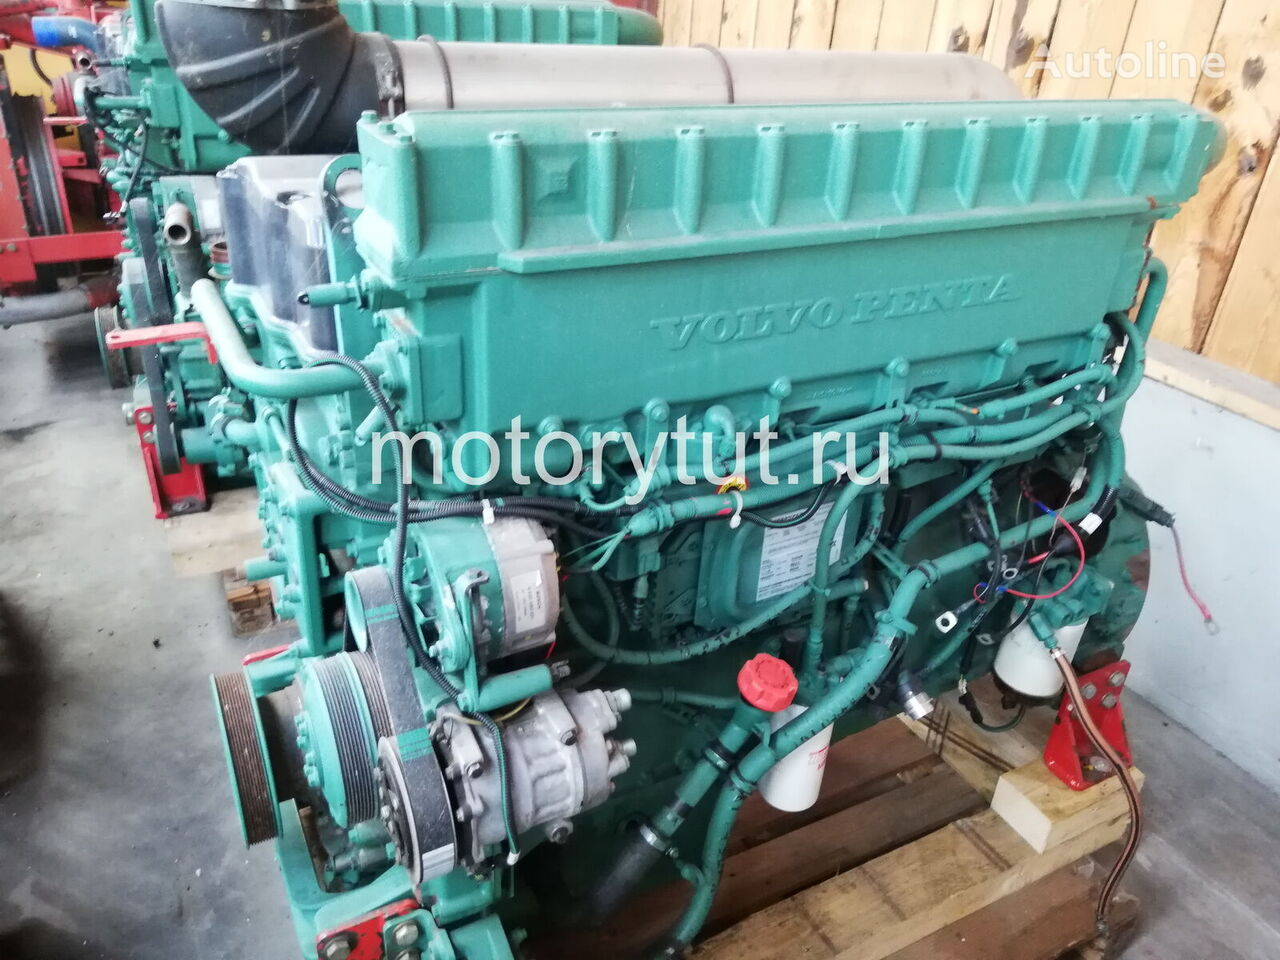 VOLVO TWD1240 VE engine for other generator